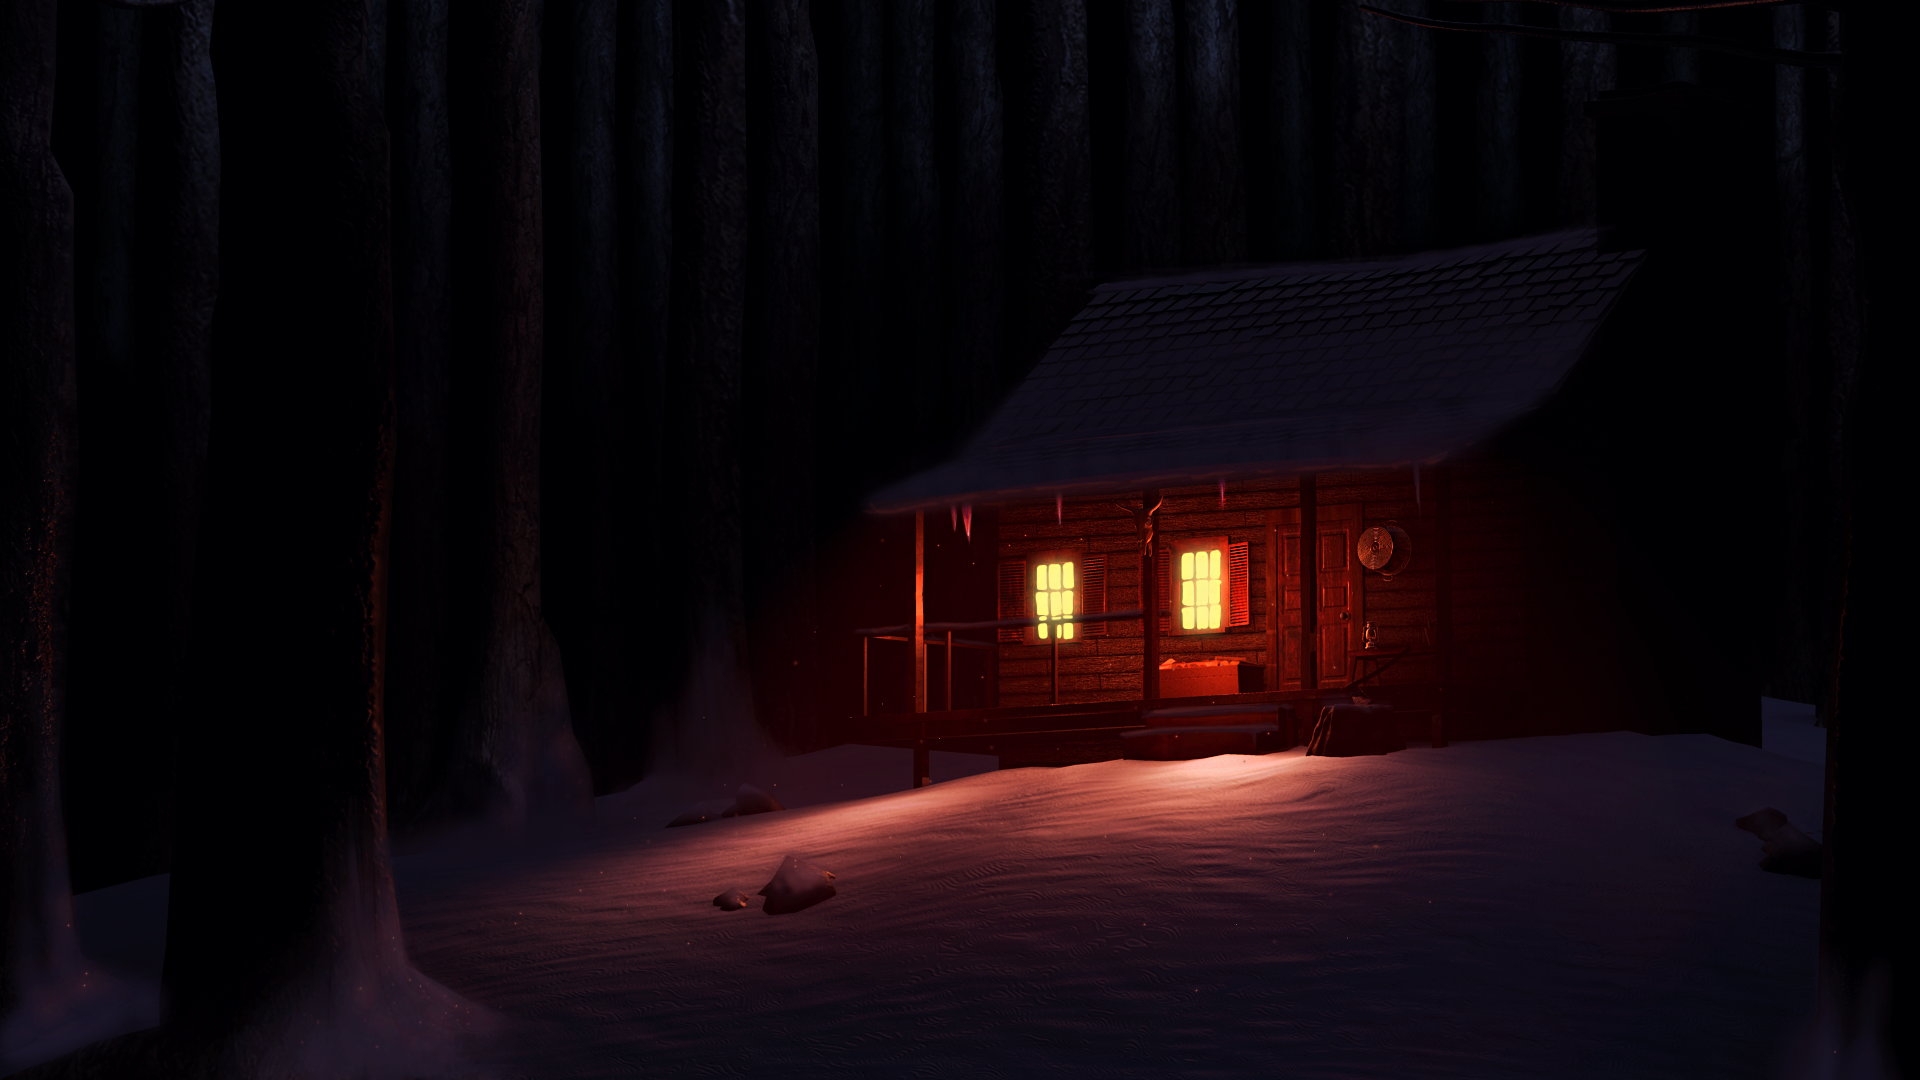 cabin_in_the_snowy_woods__by_pow_pow-d5d9jb5.png